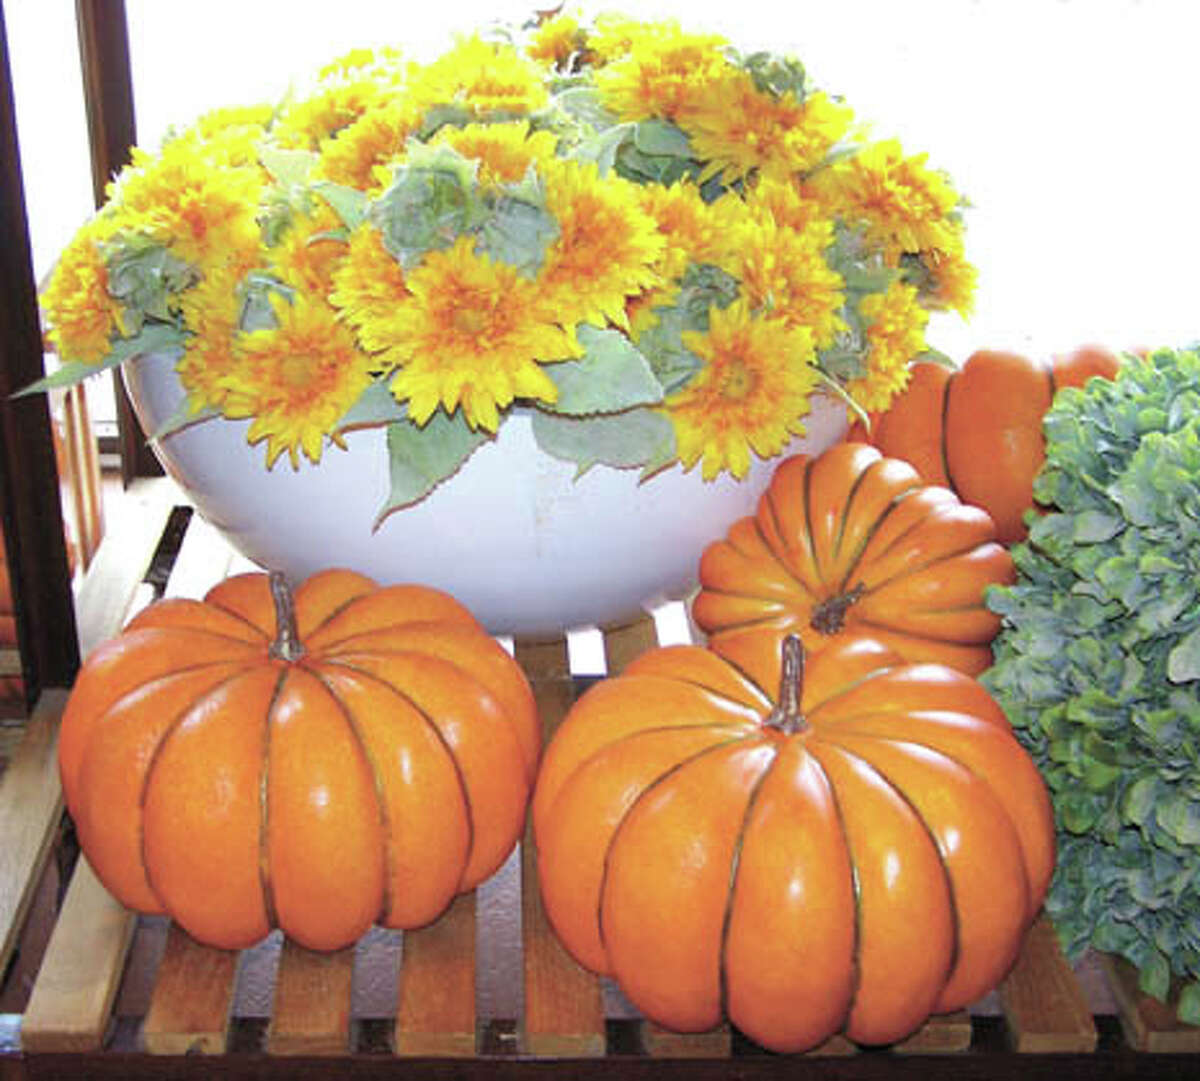 Harvest colors reflected in pumpkins and flowery mums from Flowerland will help you host fall parties and gatherings.